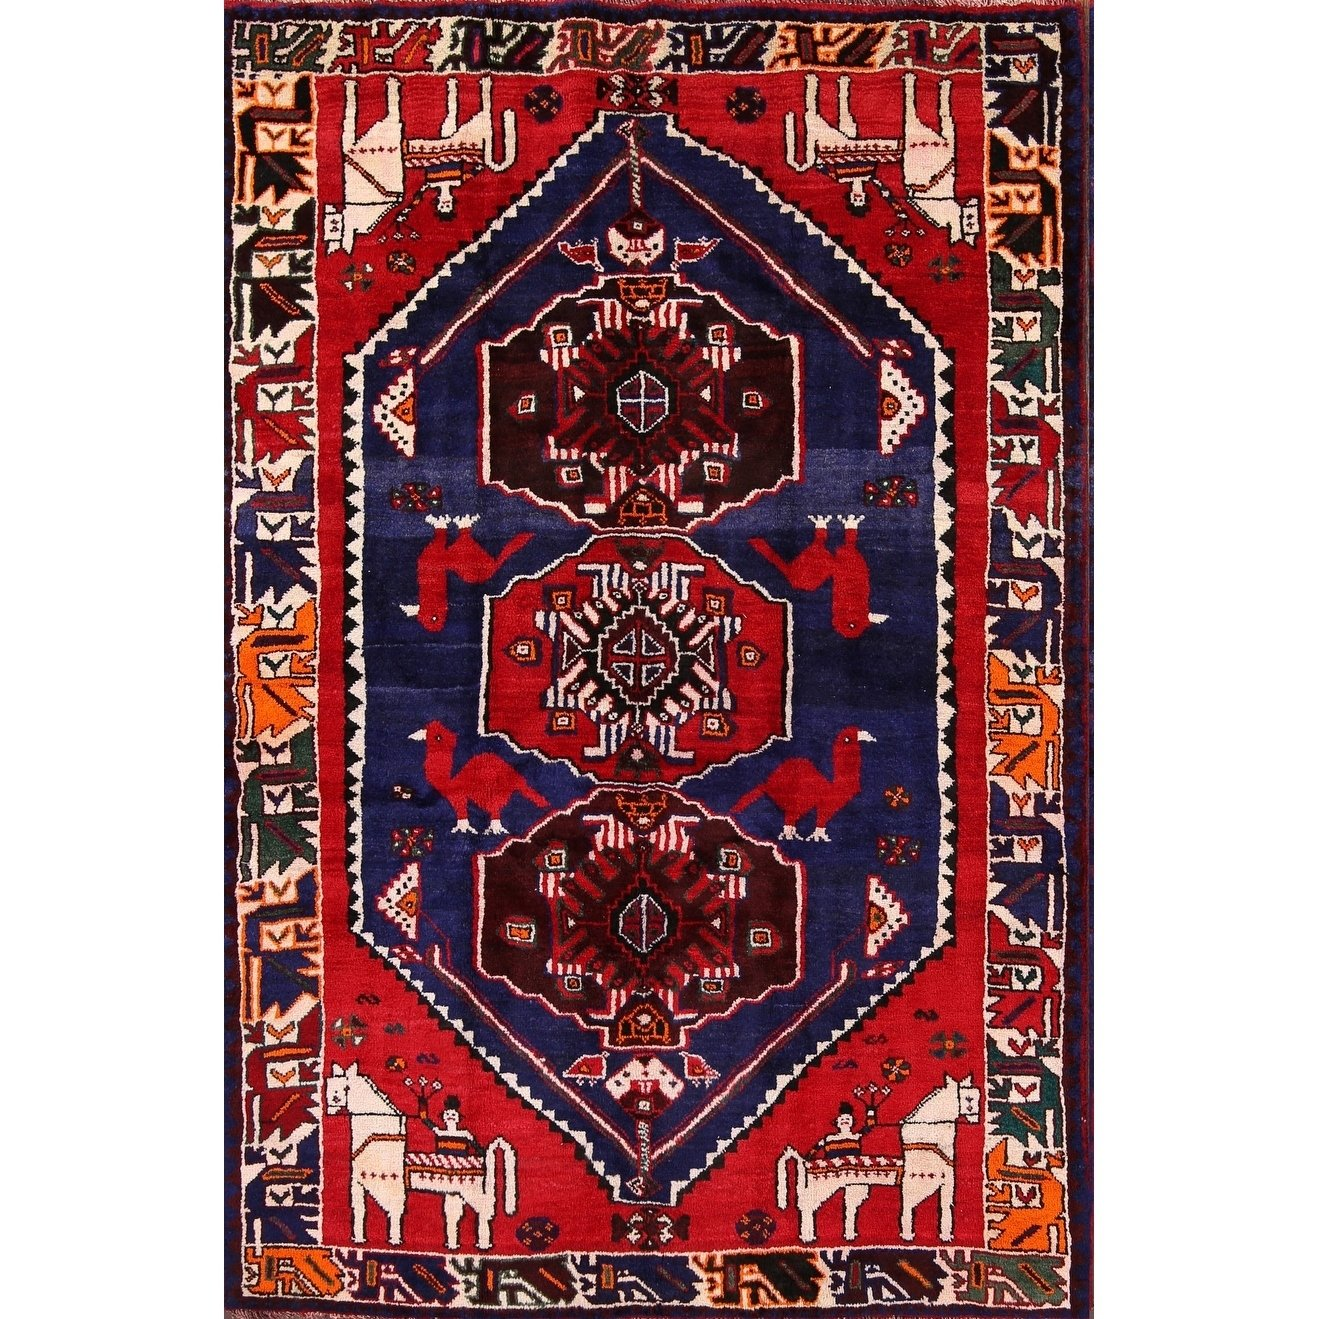 Hand Knotted Woolen Traditional Shiraz Persian Geometric Area Rug 8 1 X 5 6 8 1 X 5 6 Blue Area Rugs Yellow Area Rugs Rugs